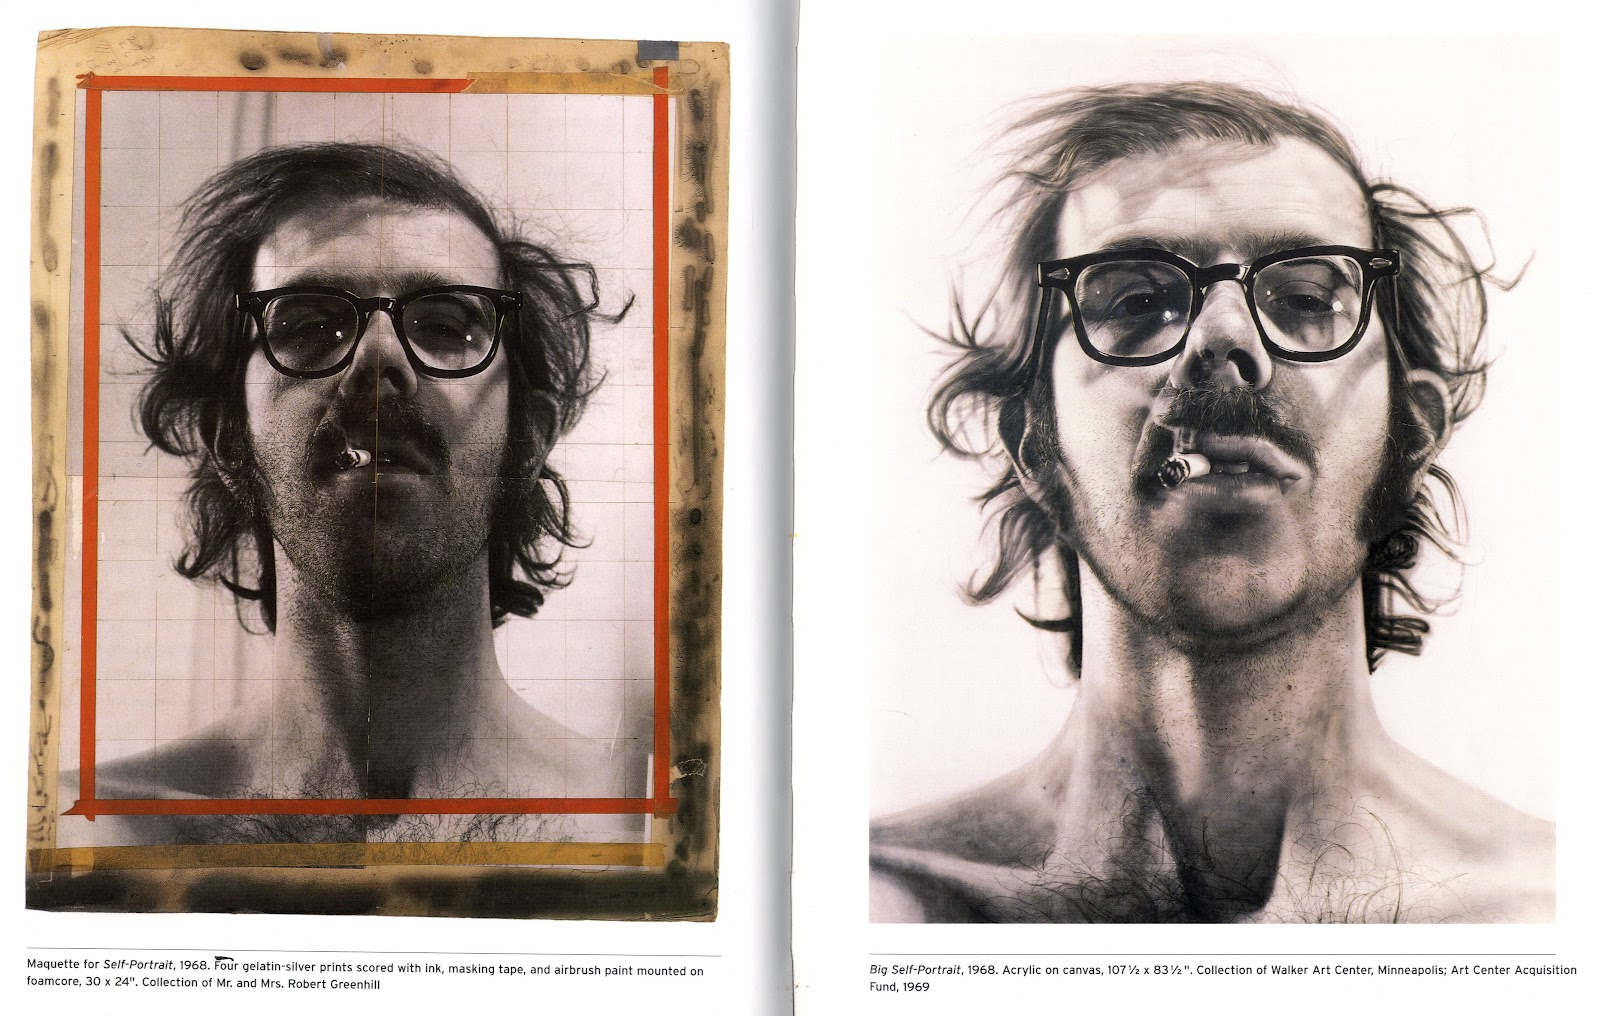 Left four gelatin silver prints scored with ink masking tape and airbrush paint mounted on foamcore right big self portrait 1968